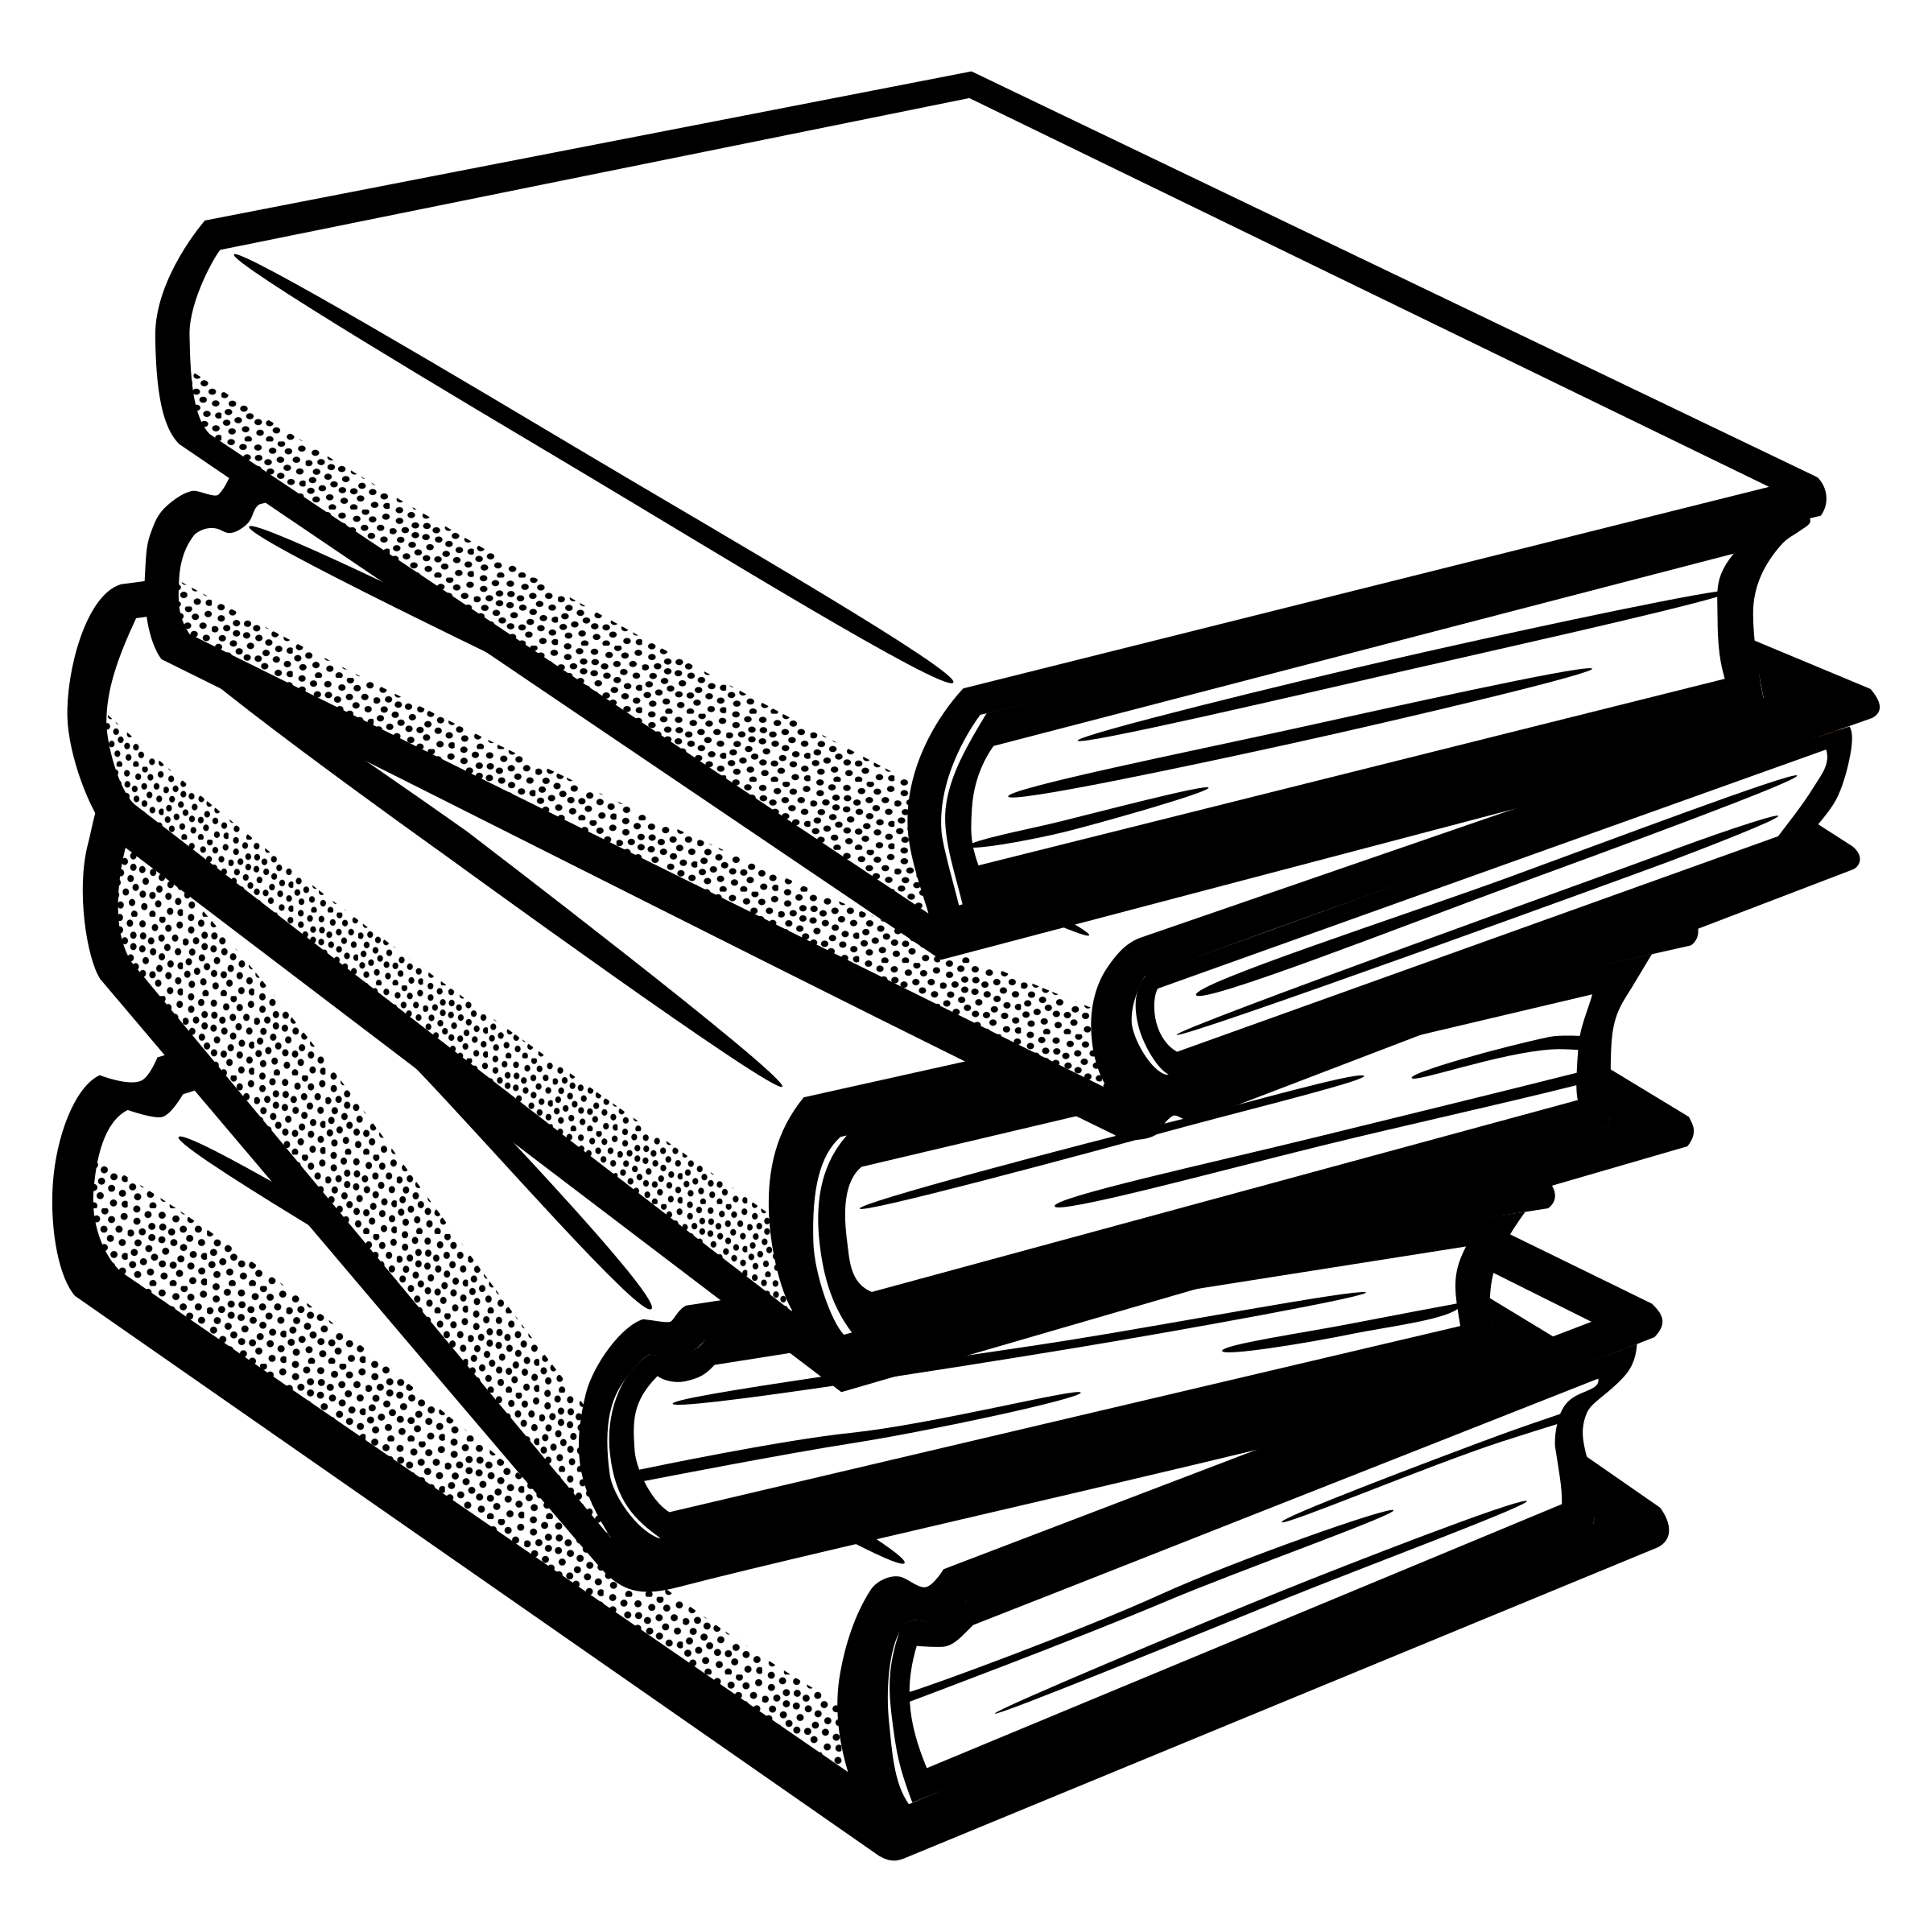 Book stack clipart black and white clip art freeuse library books - lineart by @frankes, line art books, on @openclipart | White ... clip art freeuse library